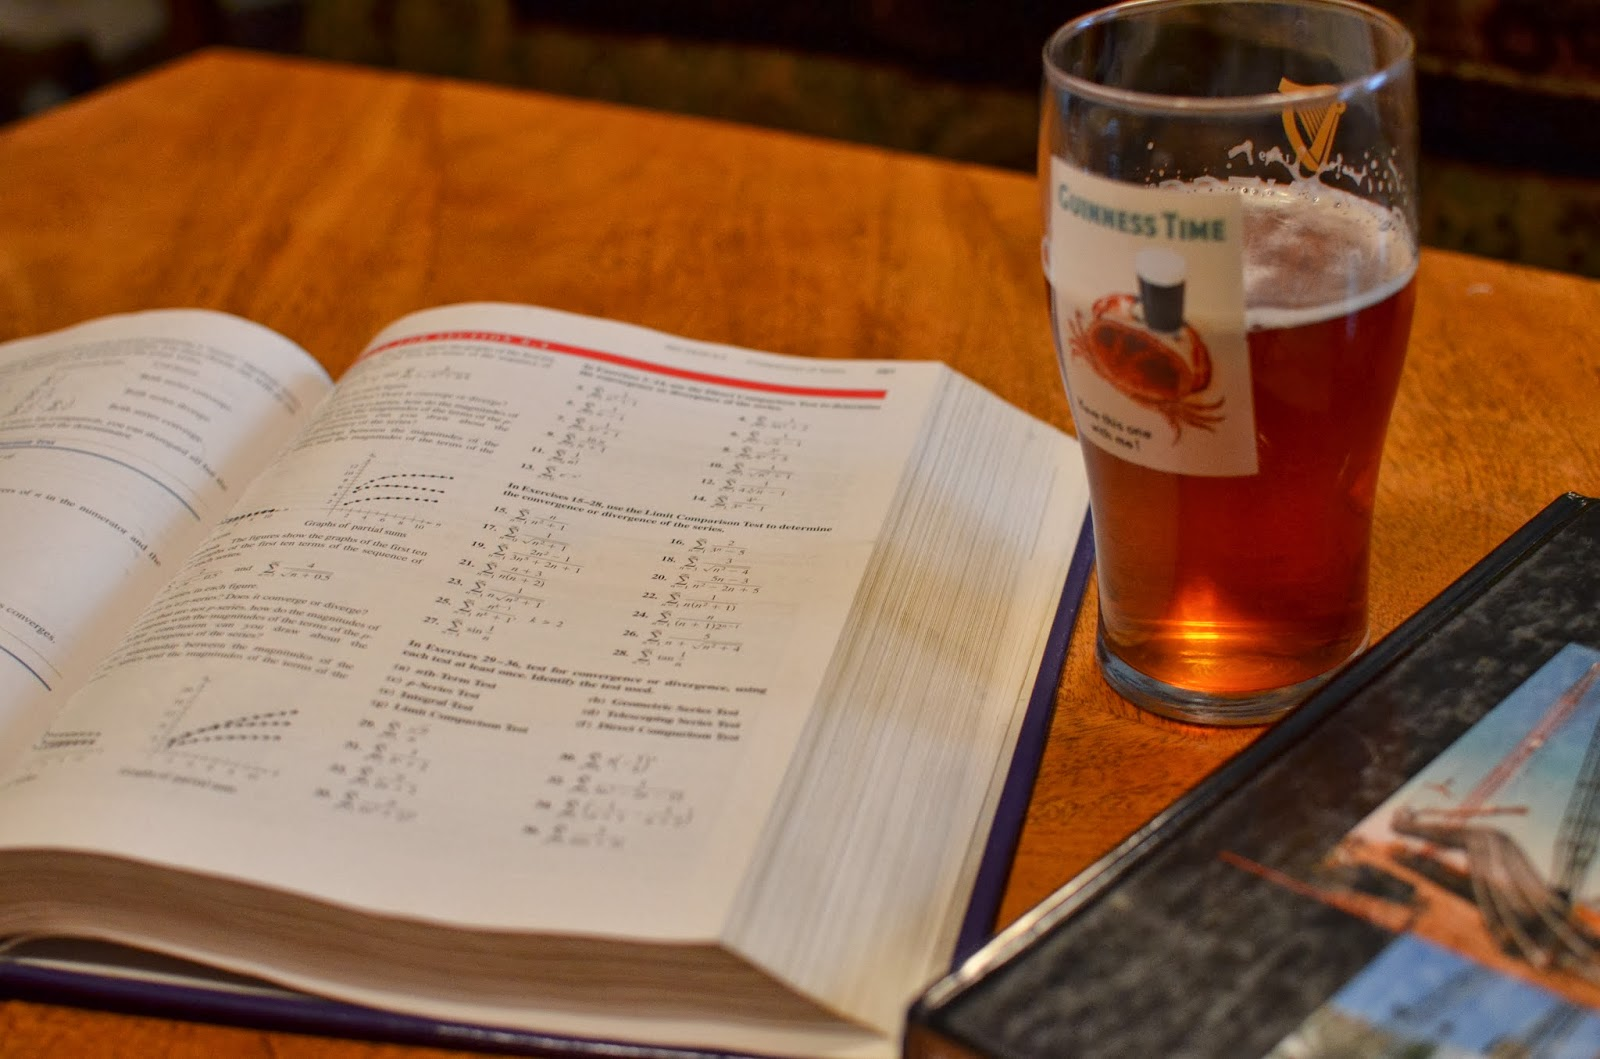 beer, alcohol, study